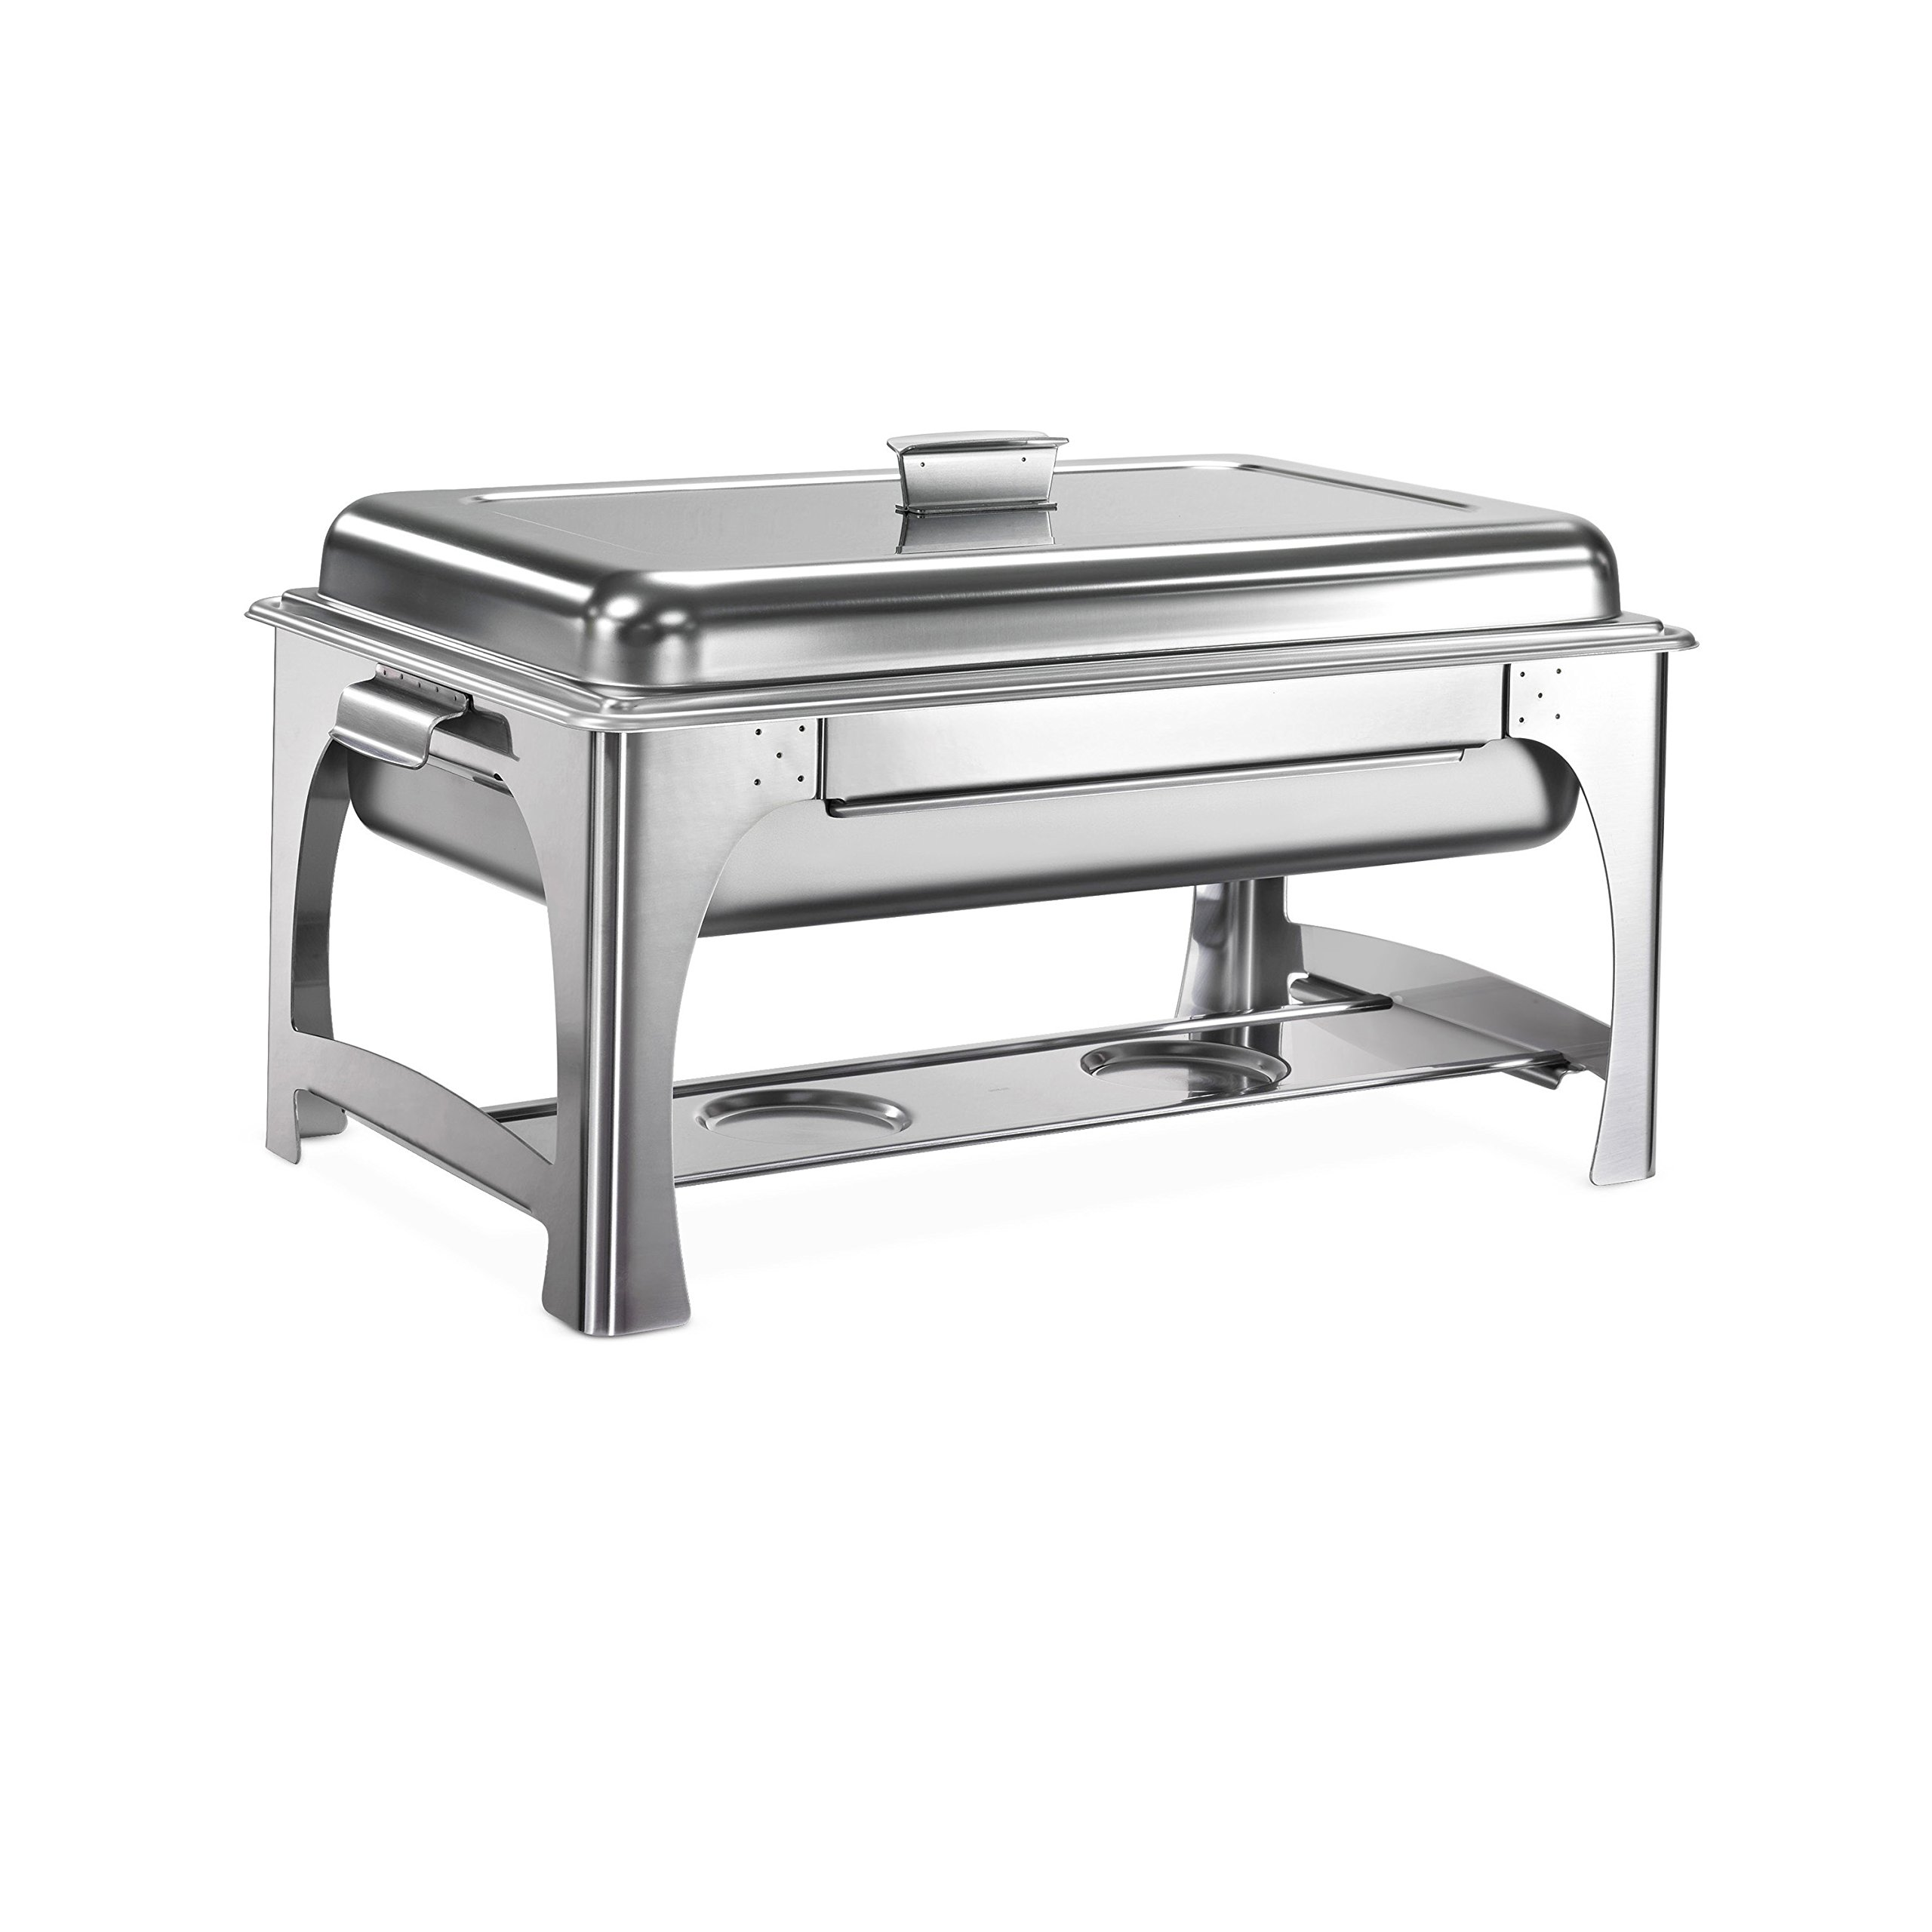 Tramontina 80120/520DS Pro-Line Stainless Steel Chafing Dish, 9-Quart, NSF-Certified